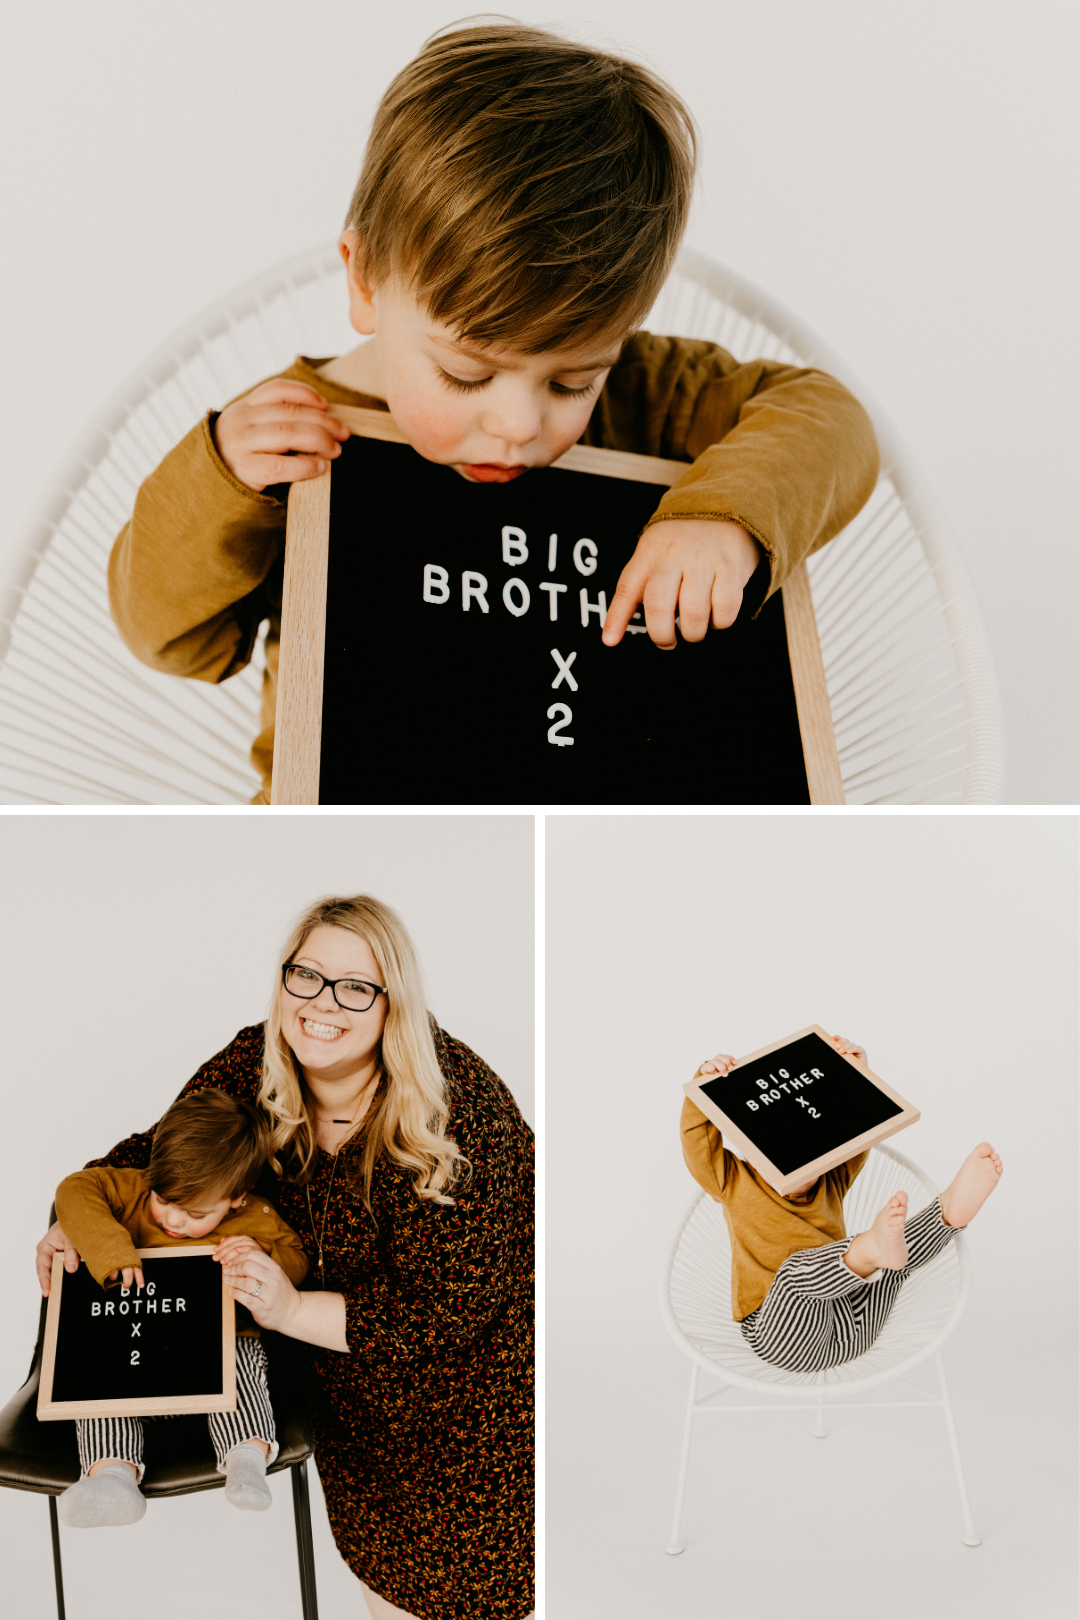 Baby announcement with a big brother